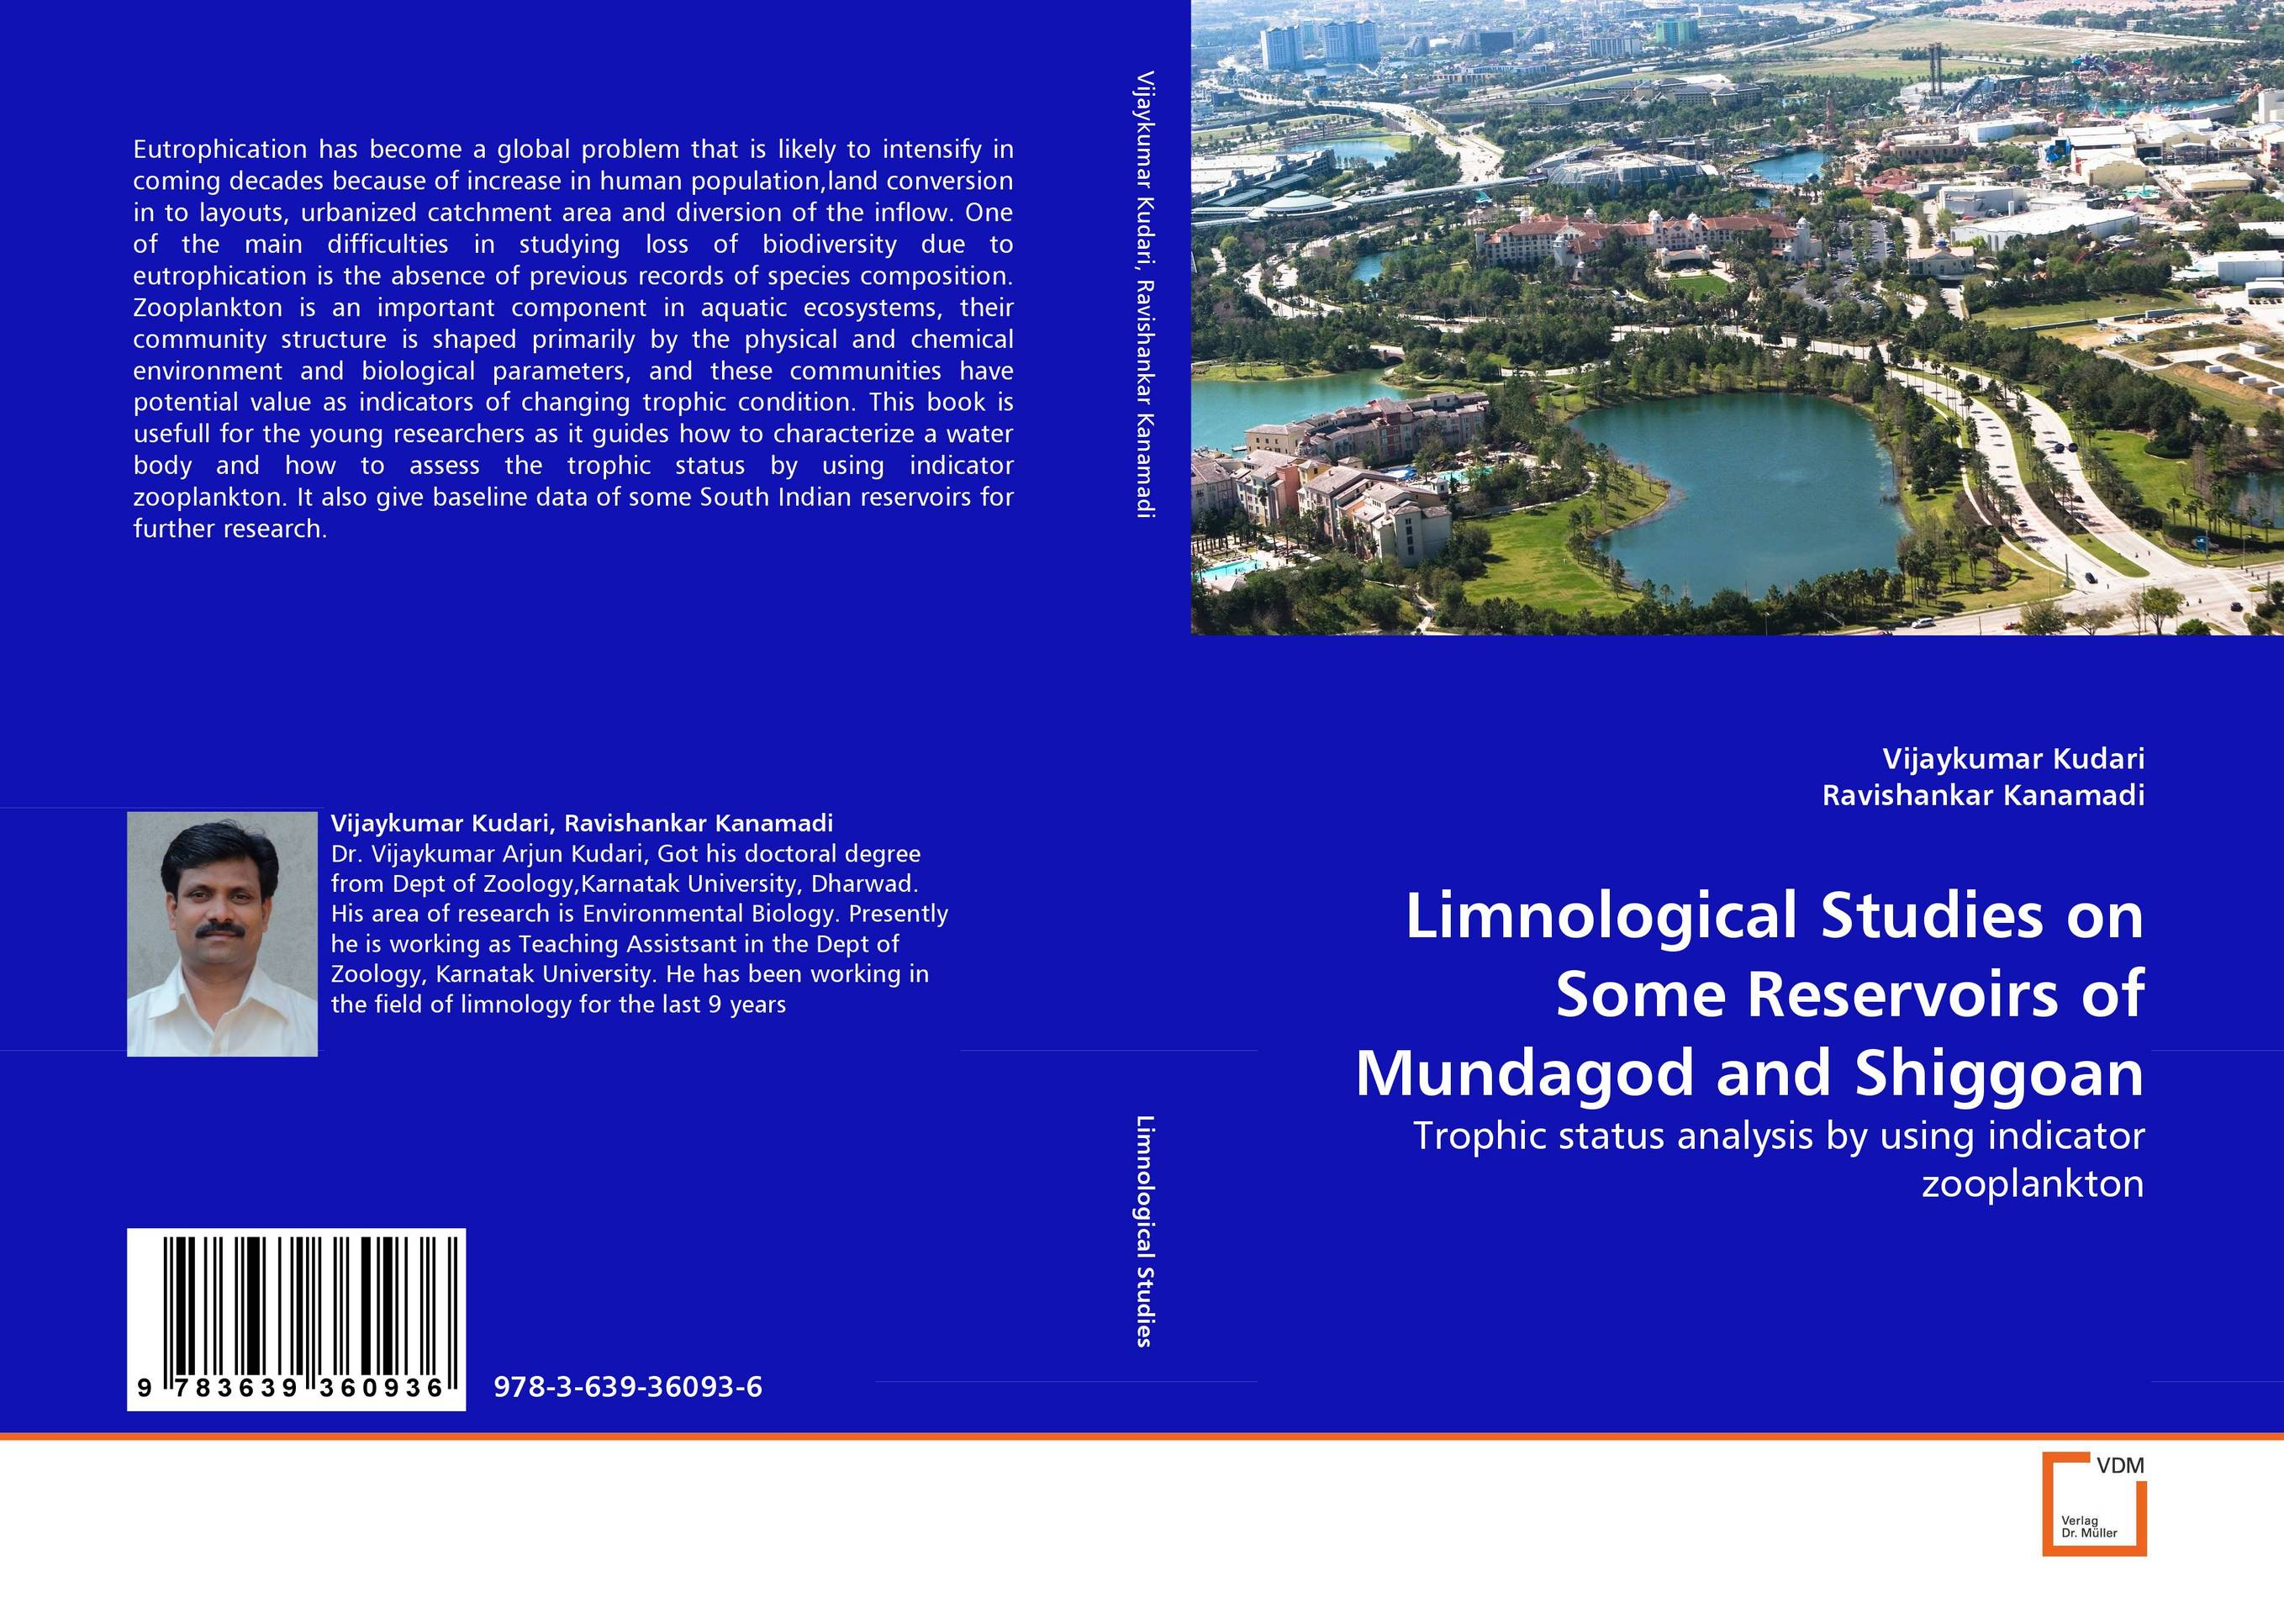 Limnological Studies on Some Reservoirs of Mundagod and Shiggoan particle mixing and settling in reservoirs under natural convection